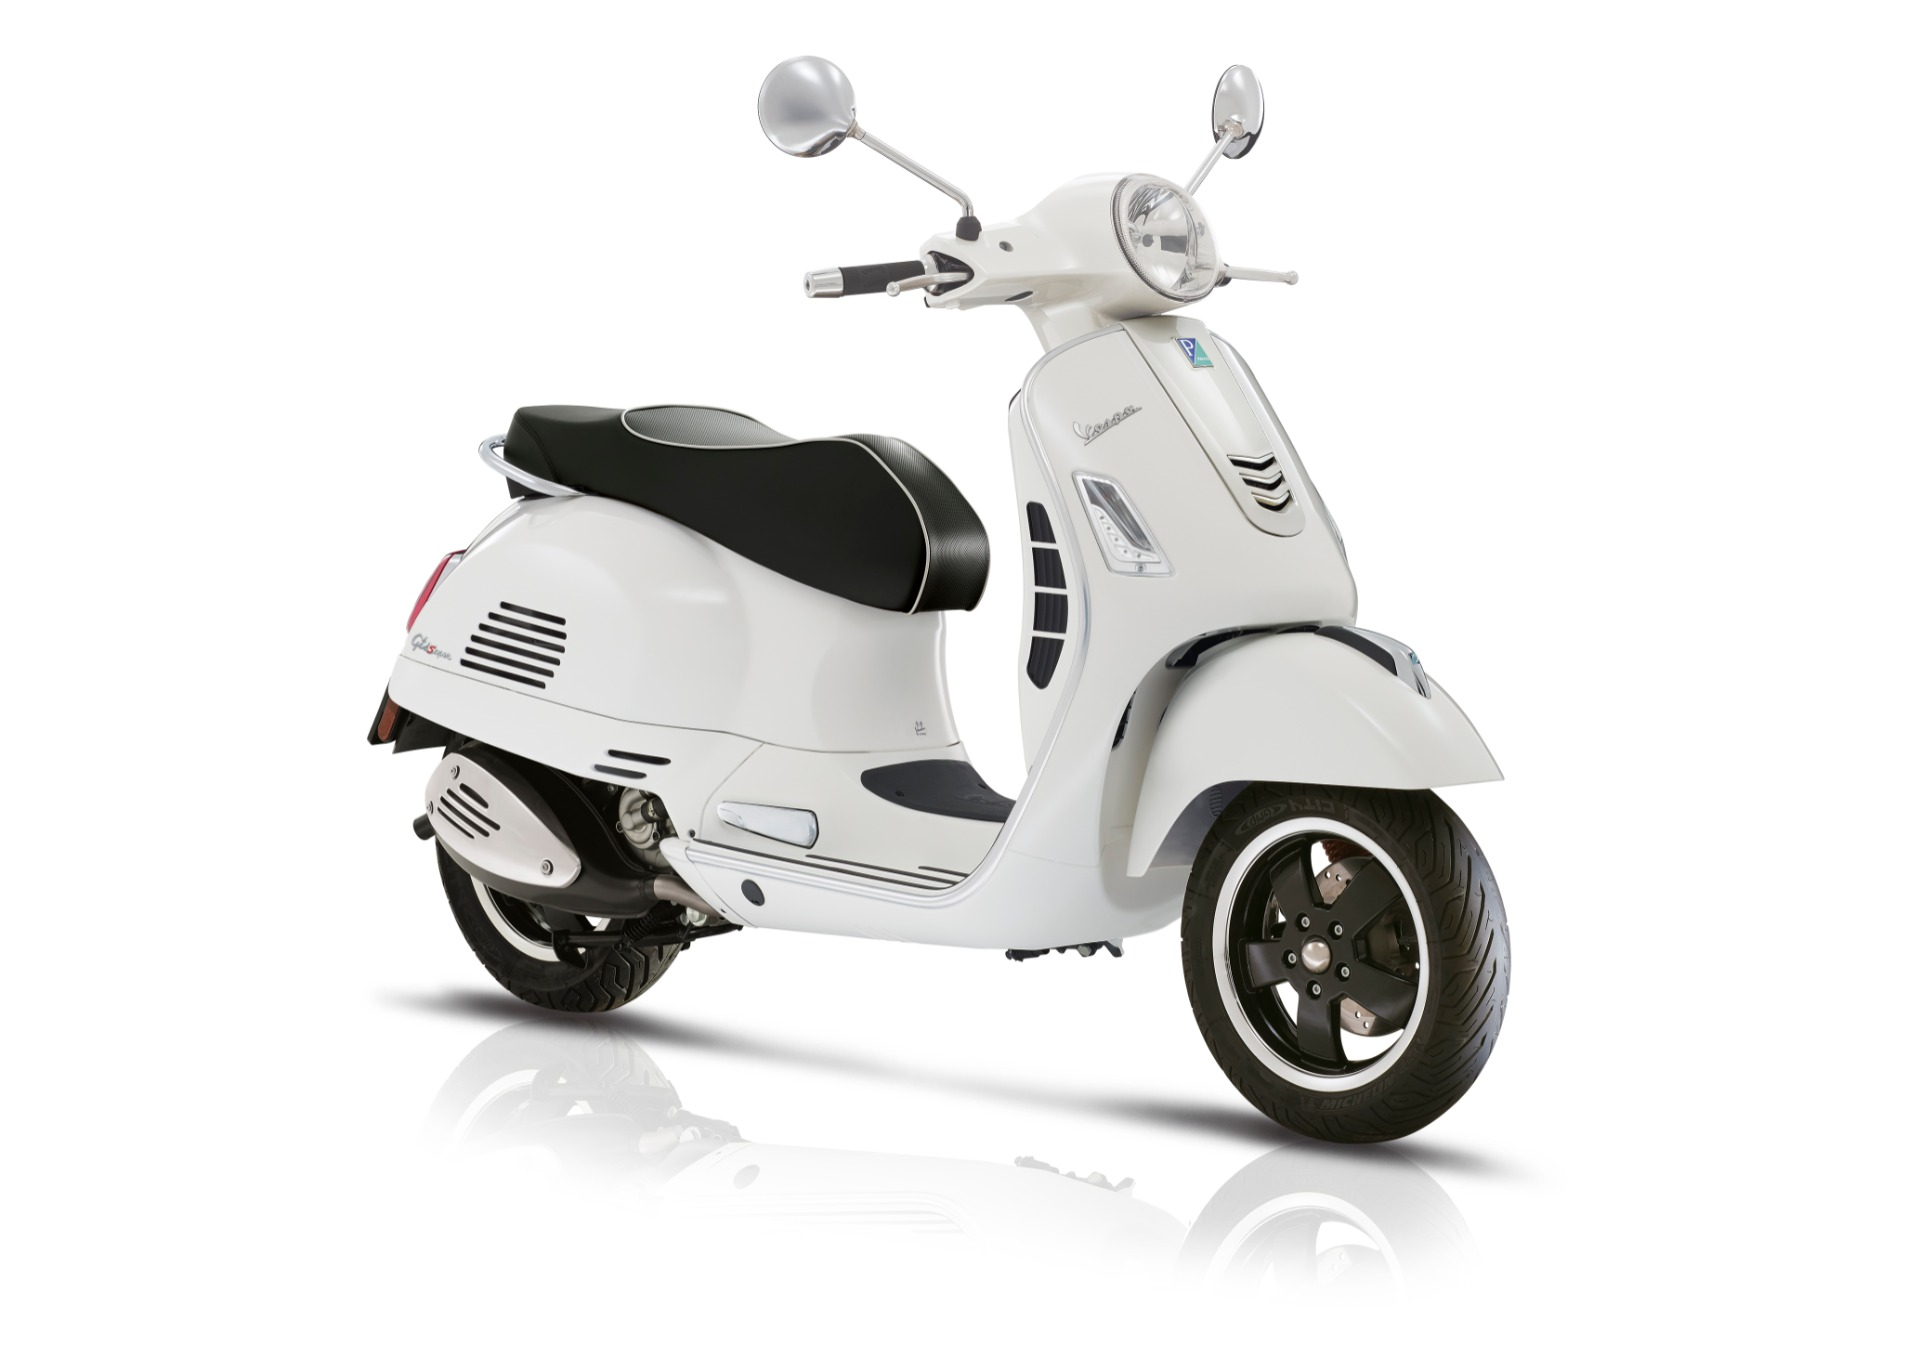 2019 vespa gts super 300 stock 1207 for sale near. Black Bedroom Furniture Sets. Home Design Ideas